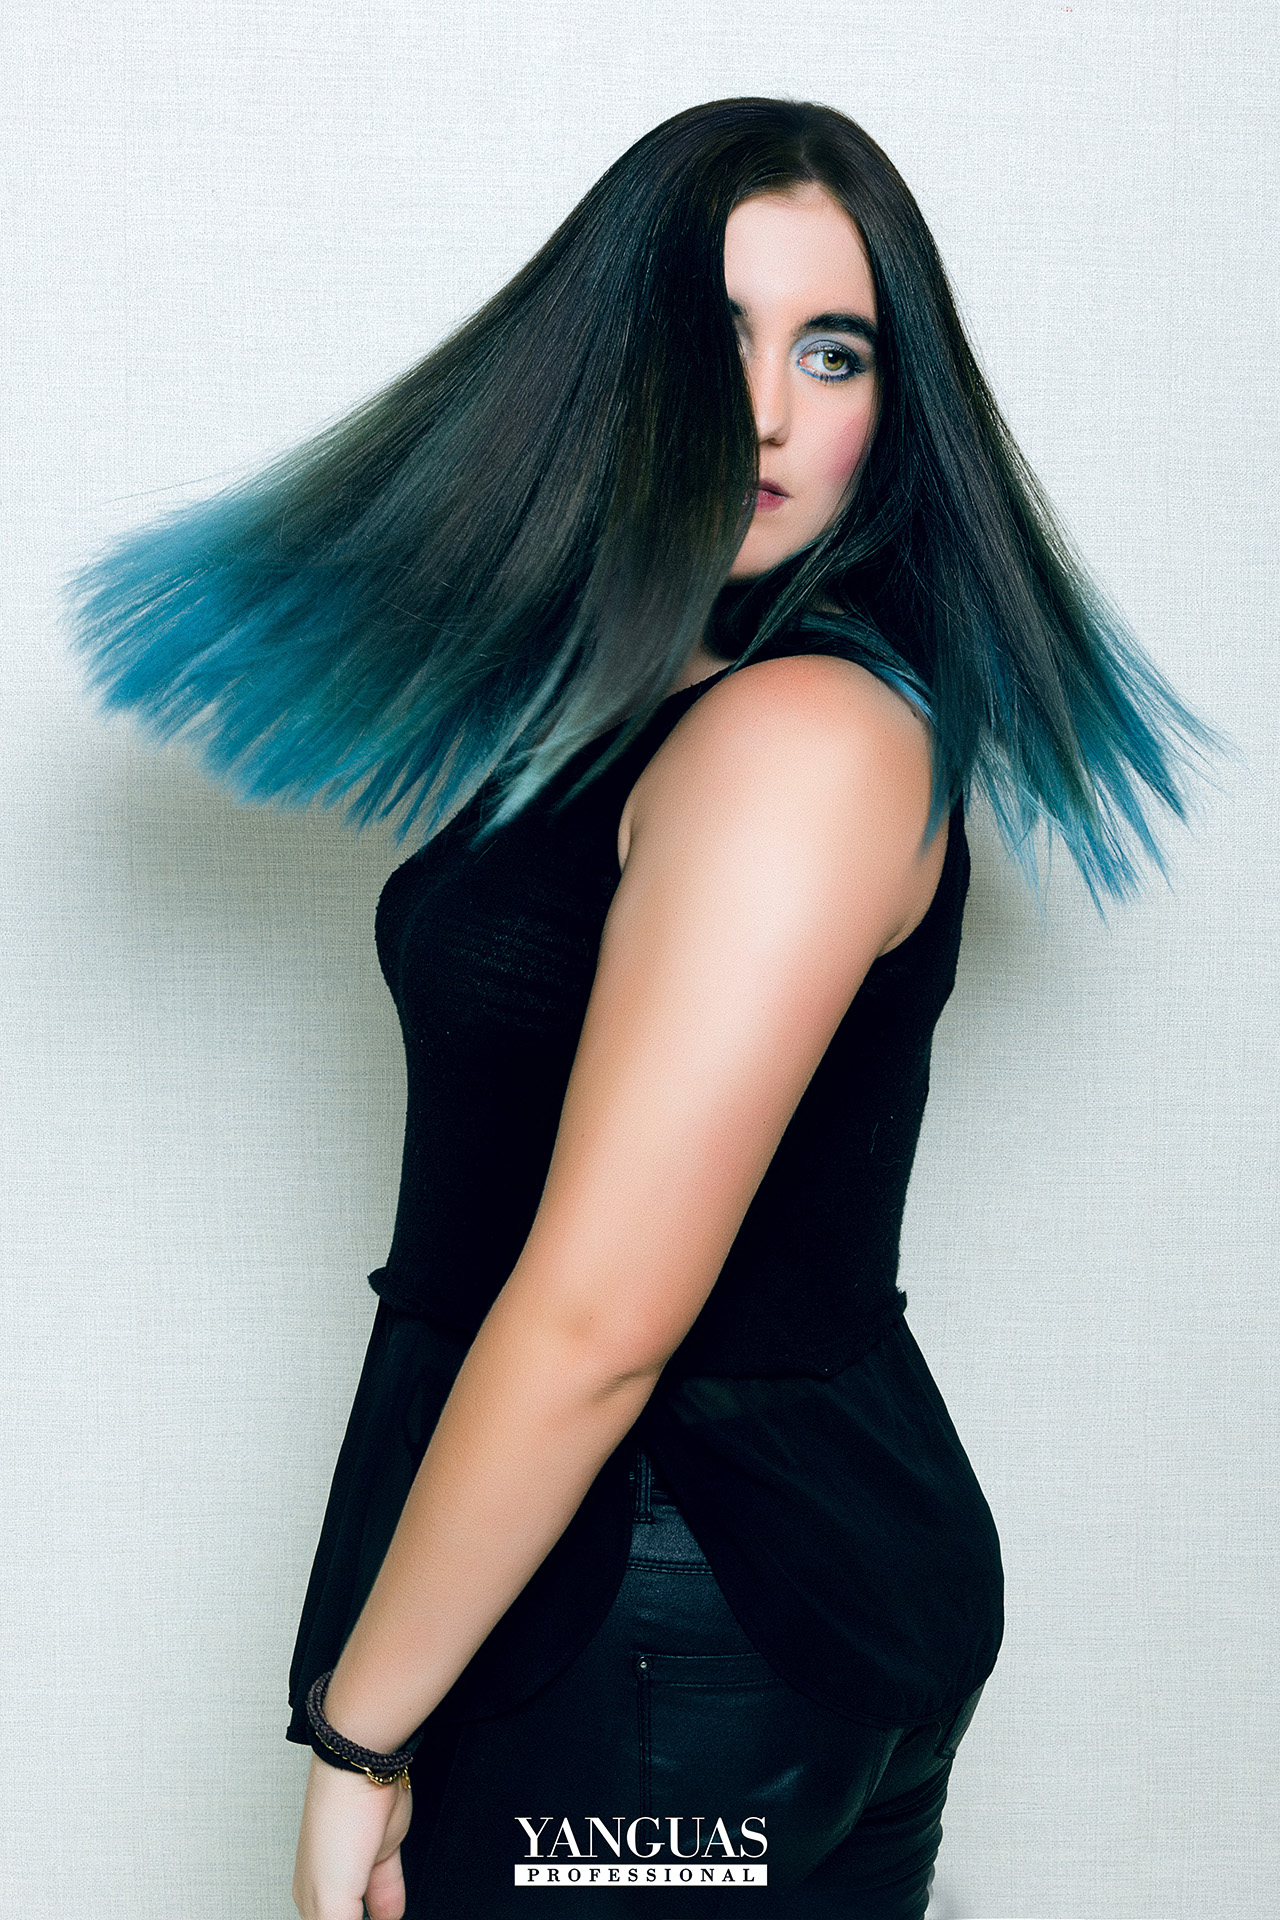 Balayage Con Azul Intenso C01 De Yanguas Contrast Attraxtion